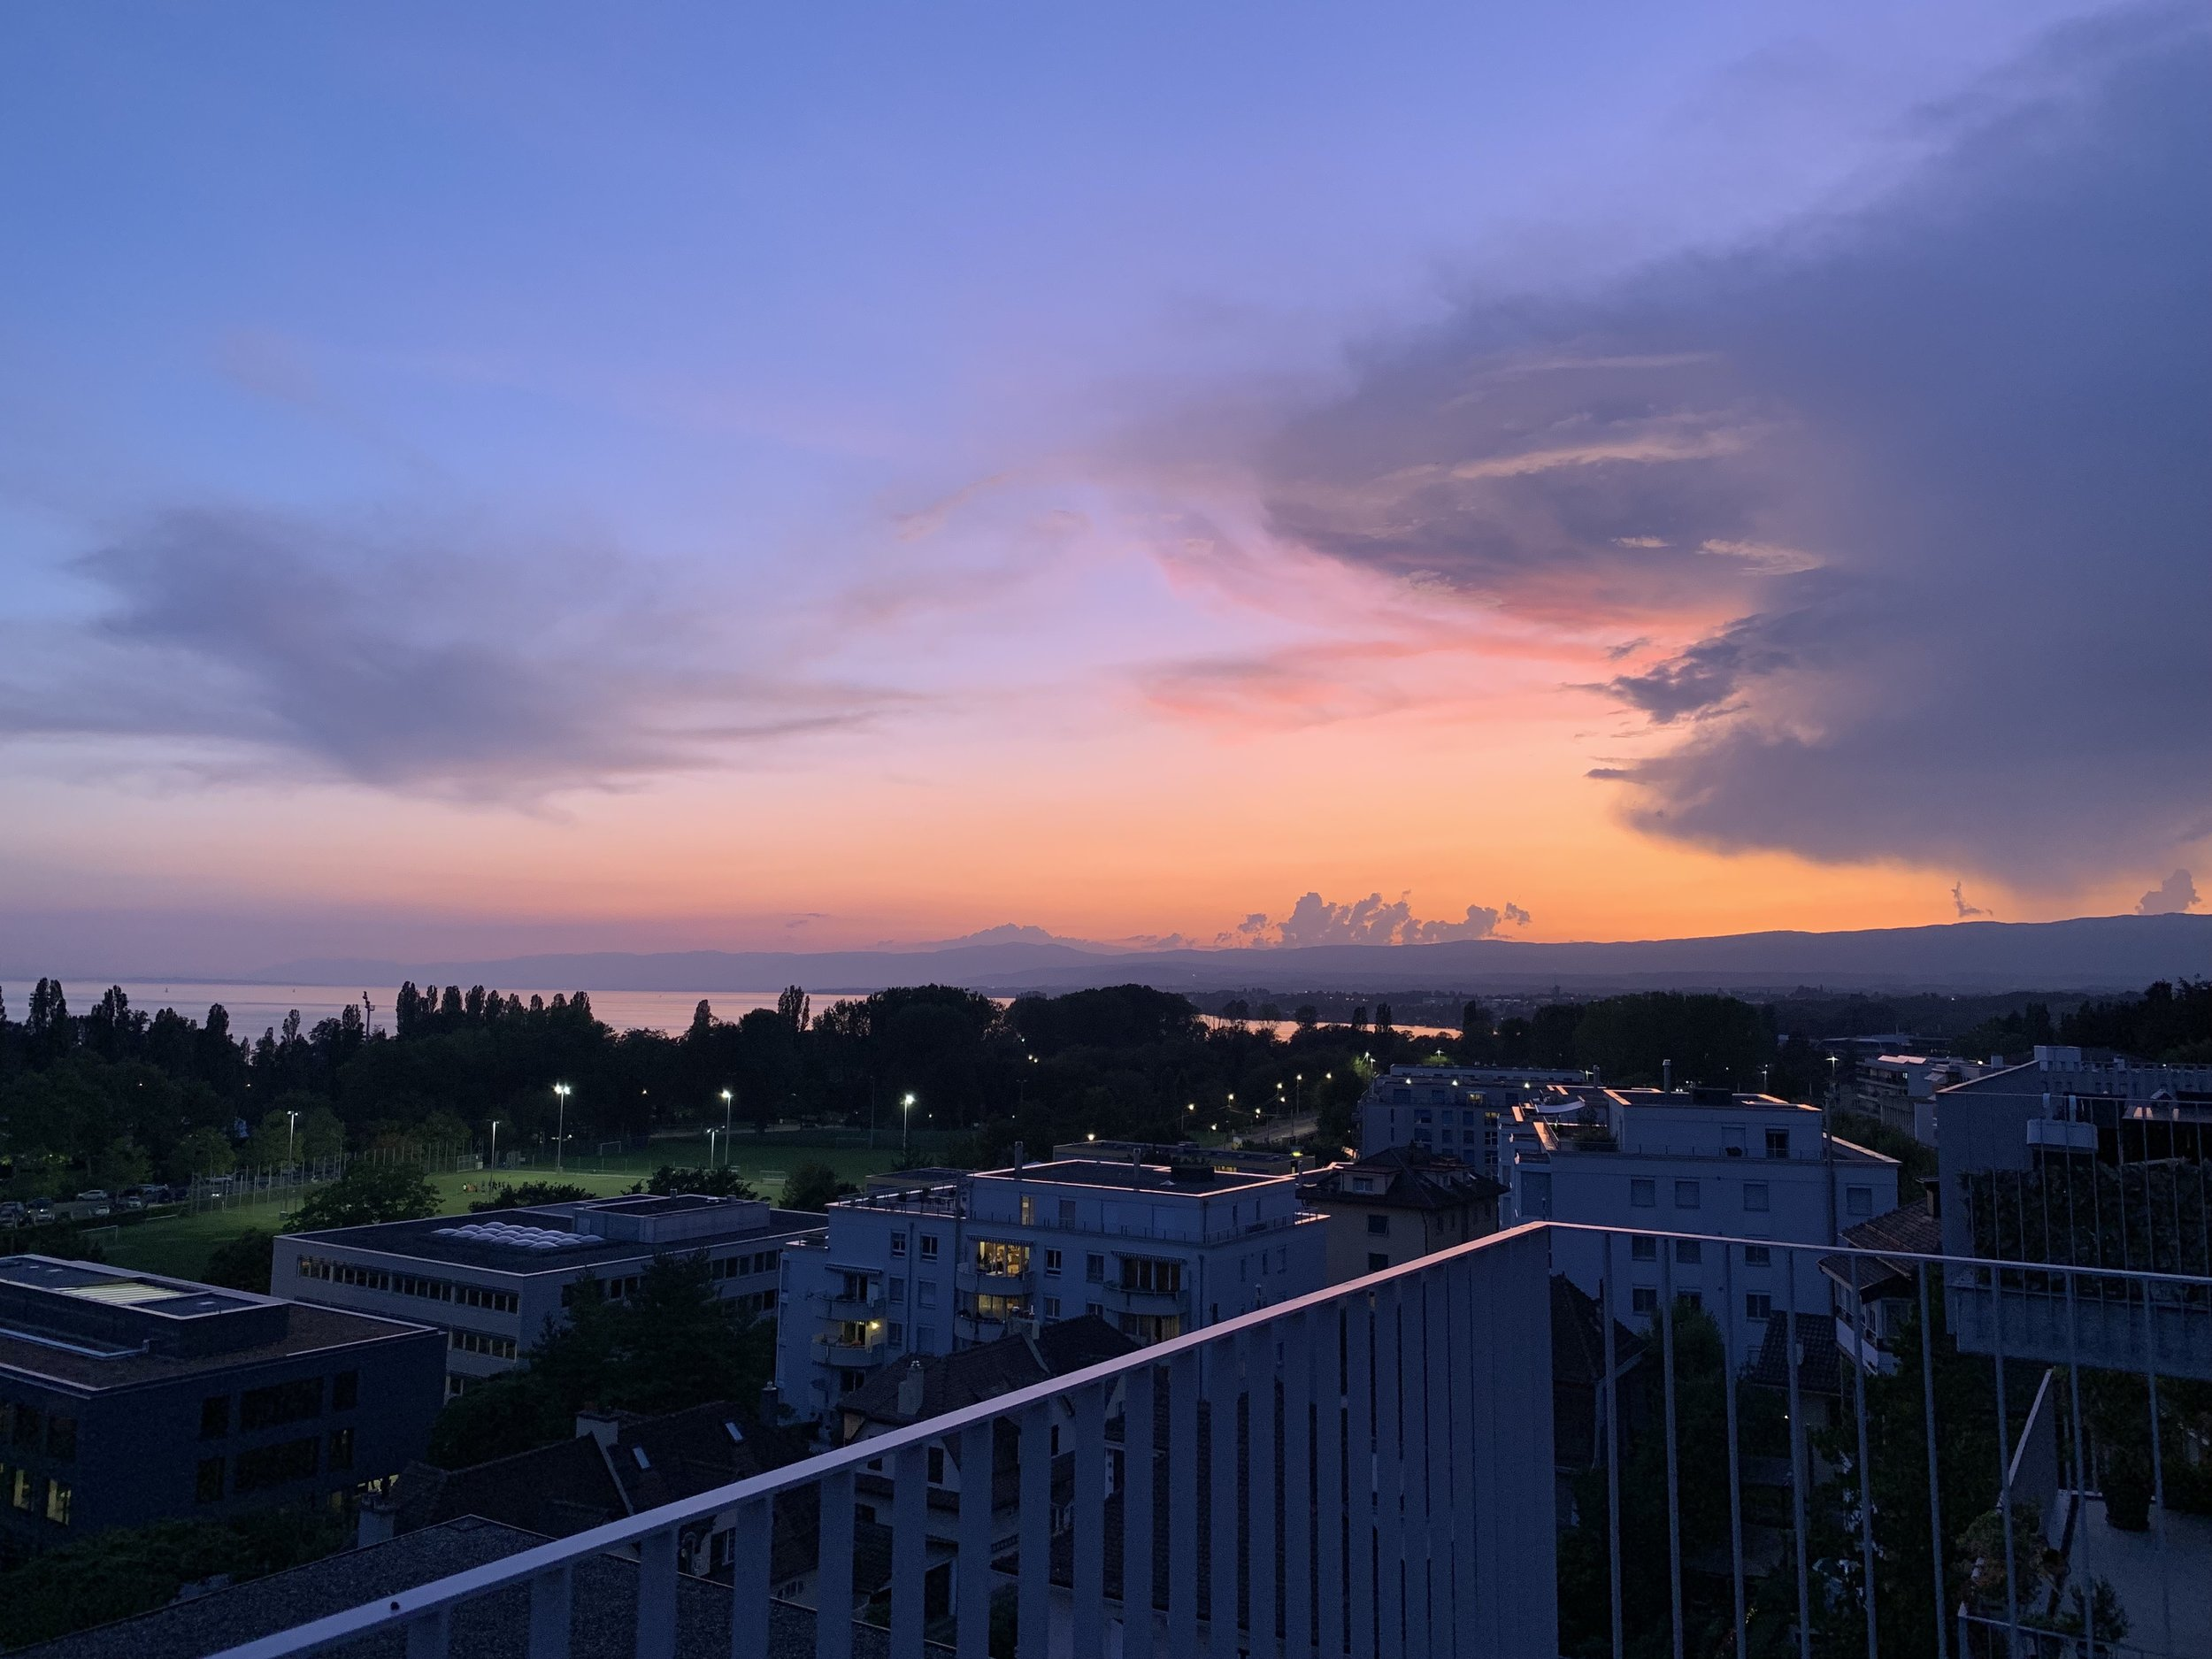 Sunset on my balcony to send out the month. August 30, 2019. Lausanne, Switzerland.